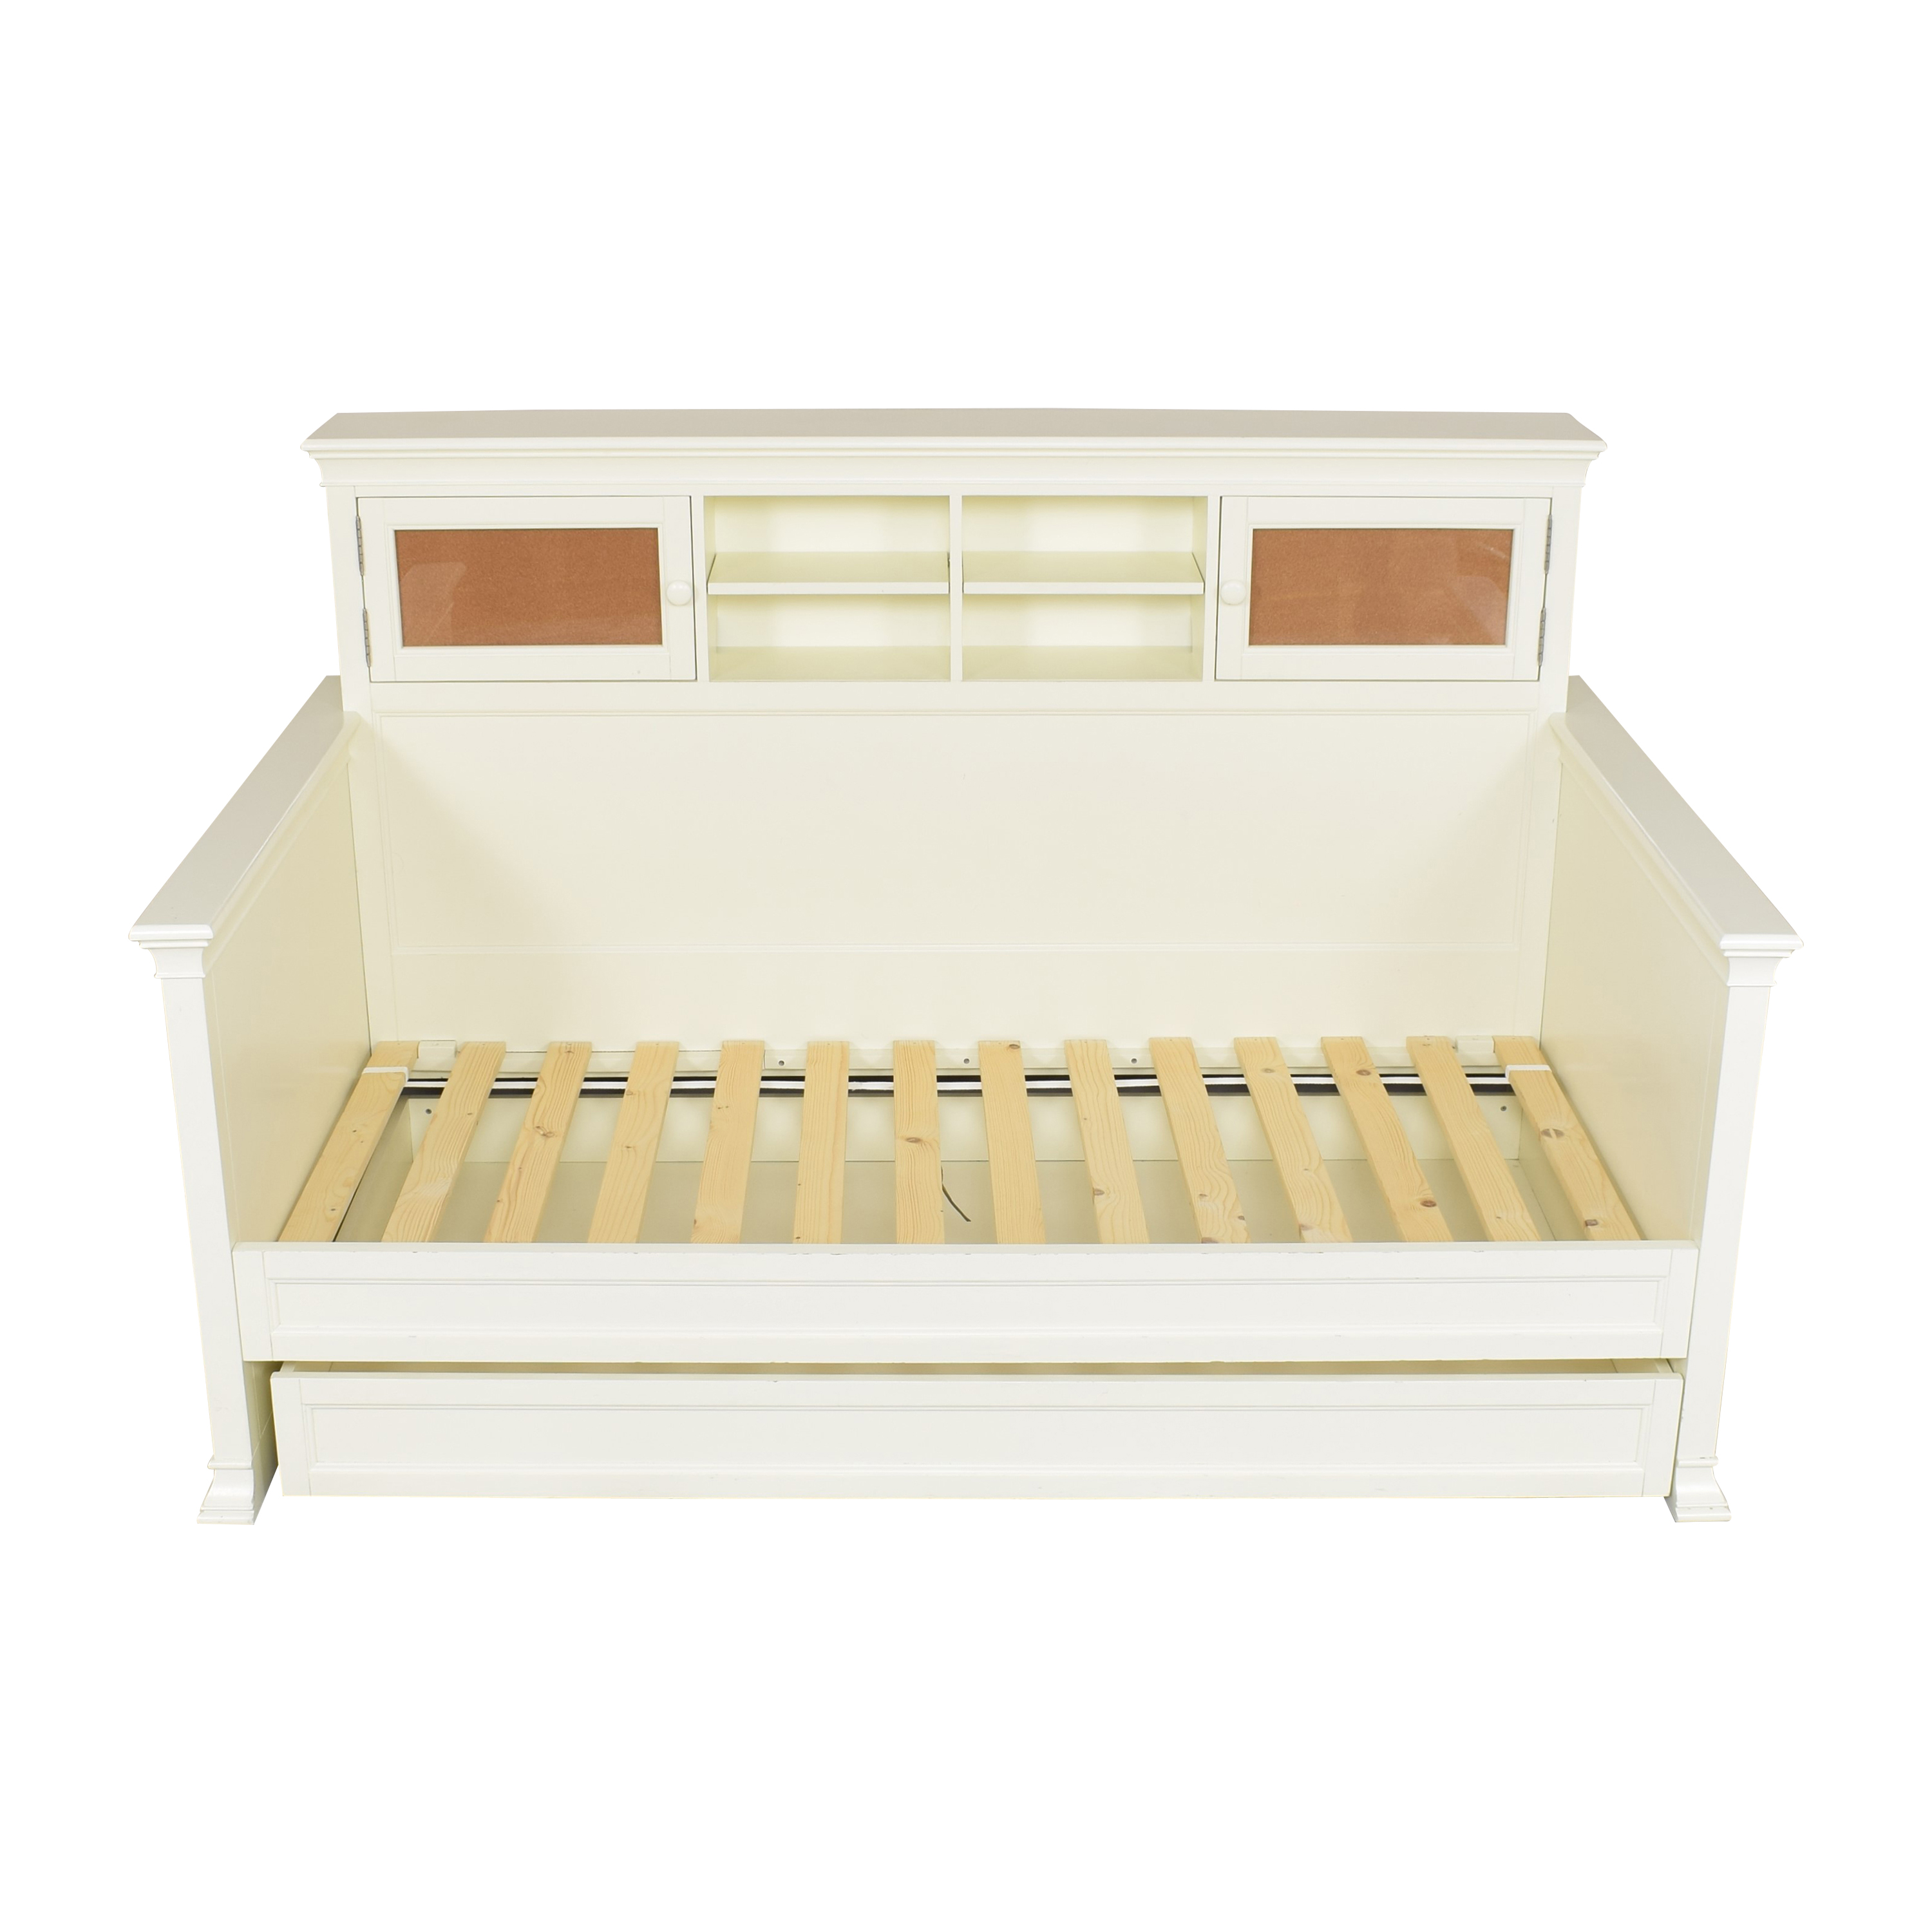 Pottery Barn Teen Pottery Barn Teen Display-It Daybed with Trundle ct